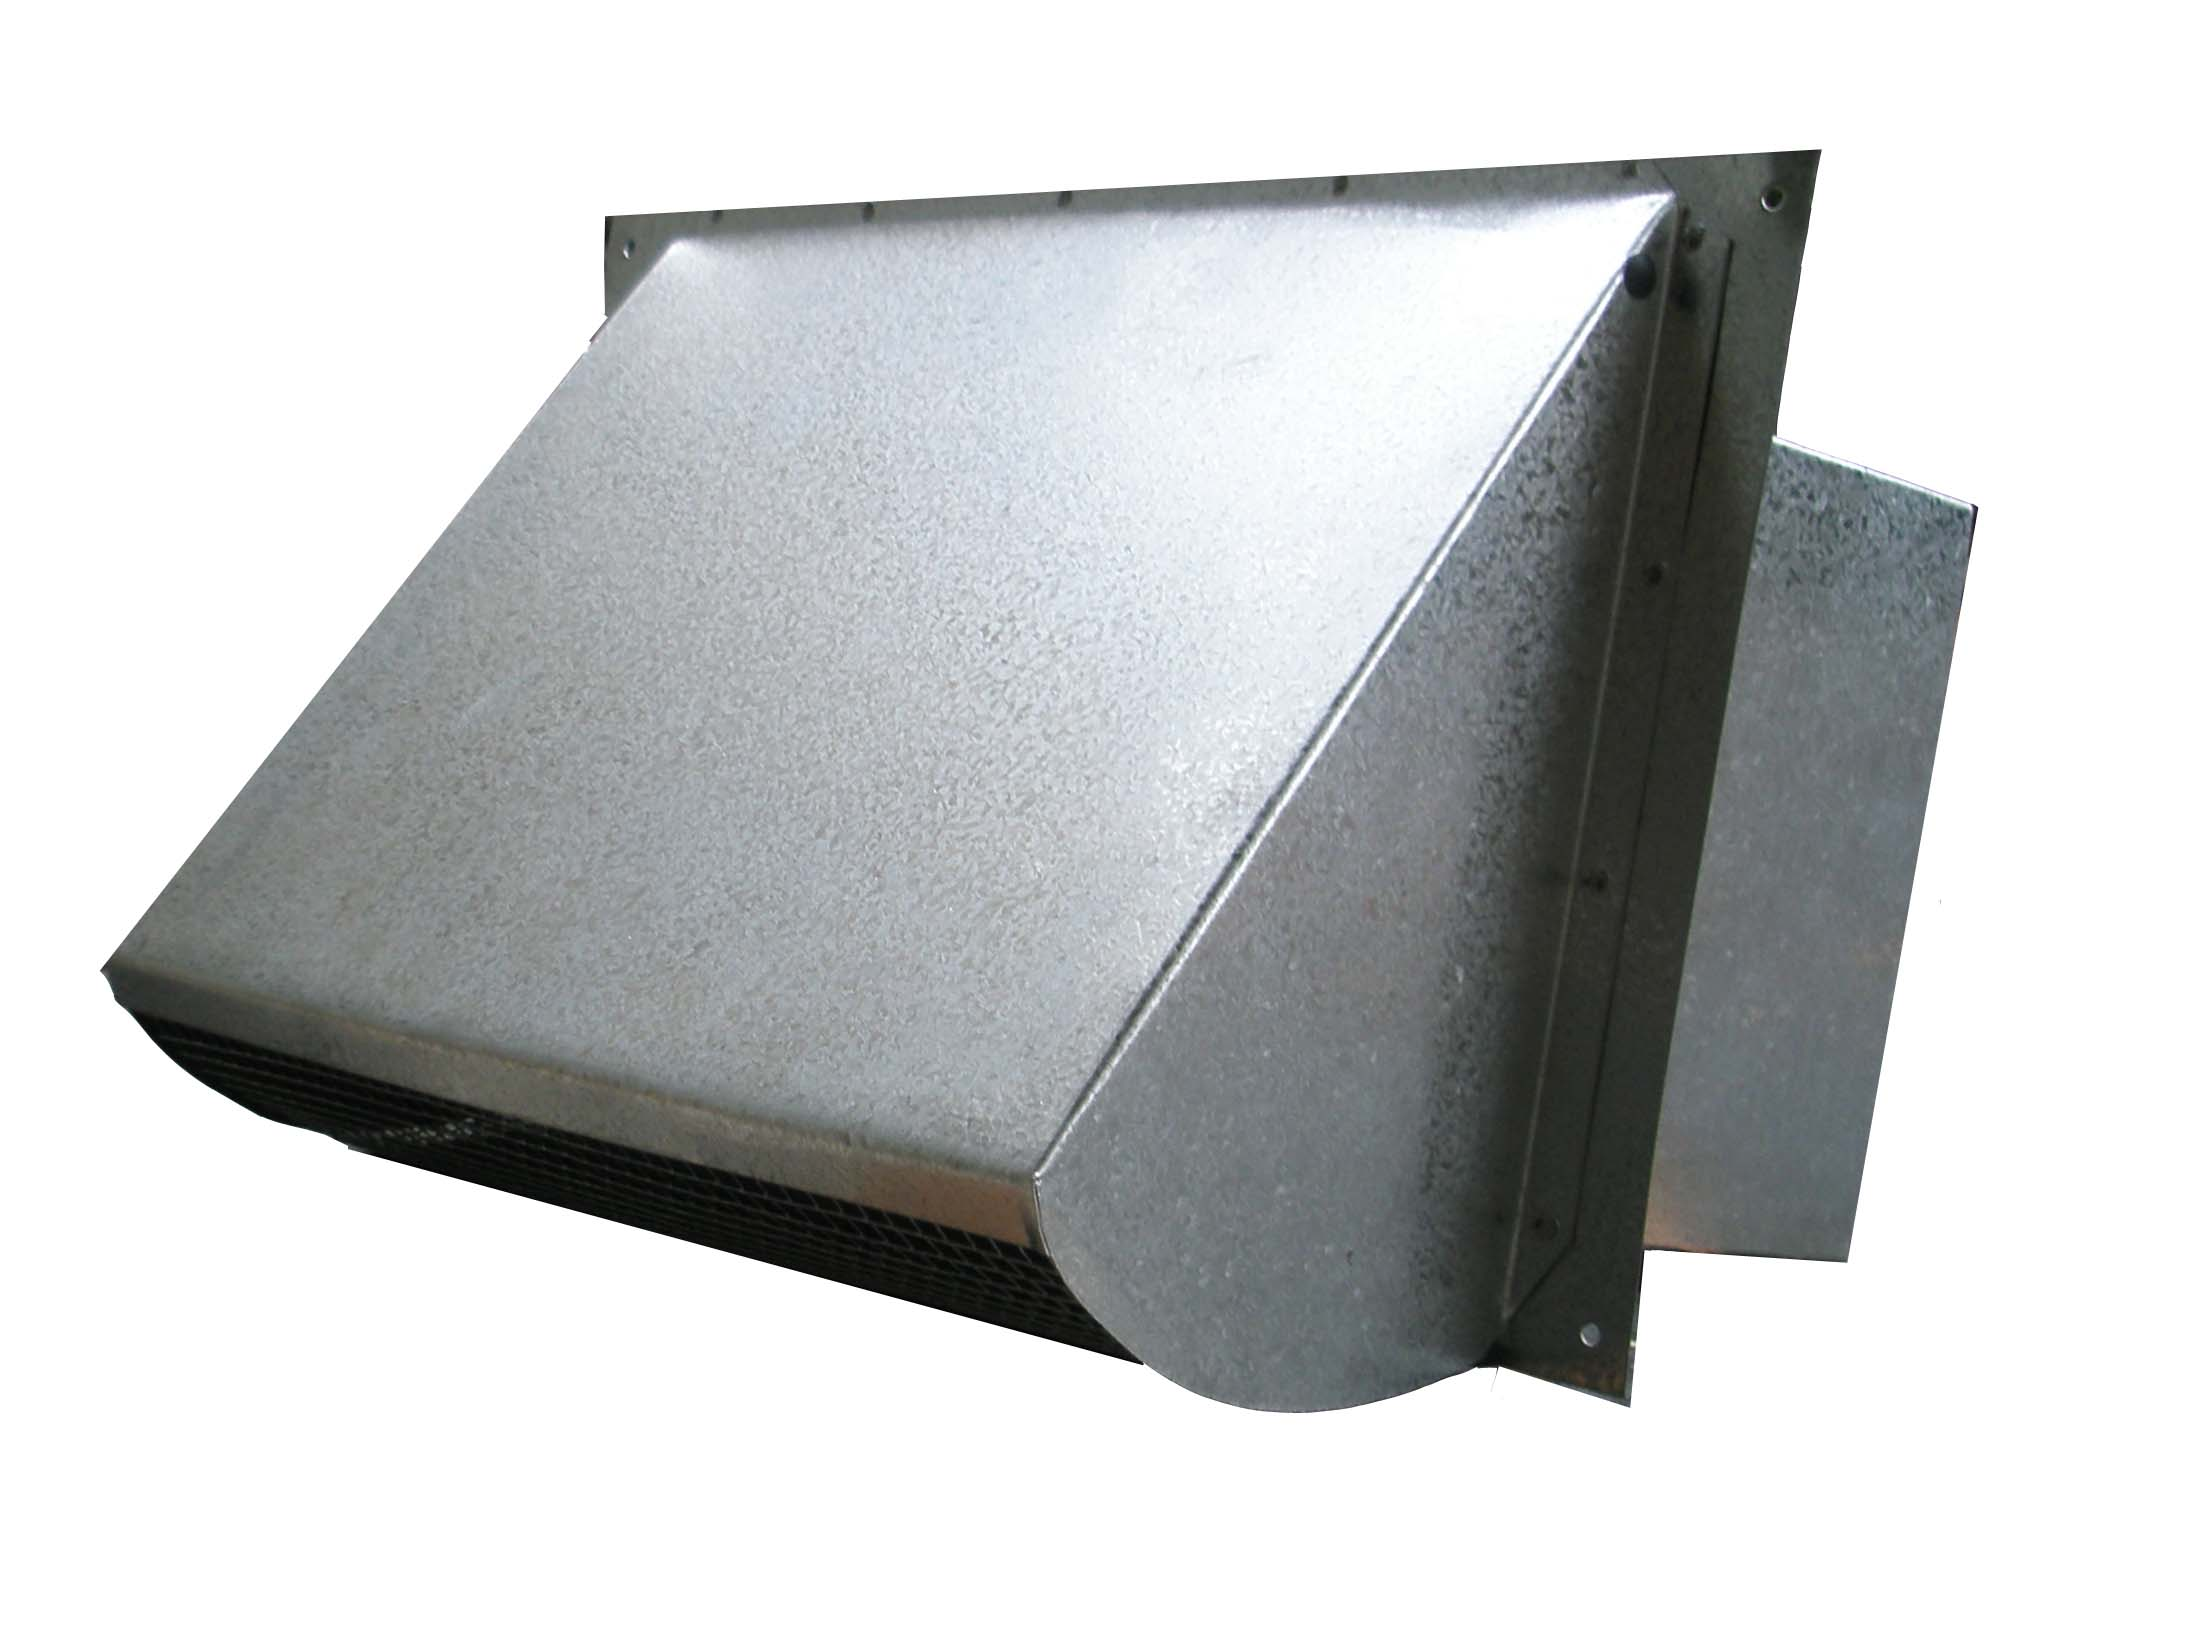 6 X 10 Outdoor Metal Range Hood Vent Cover